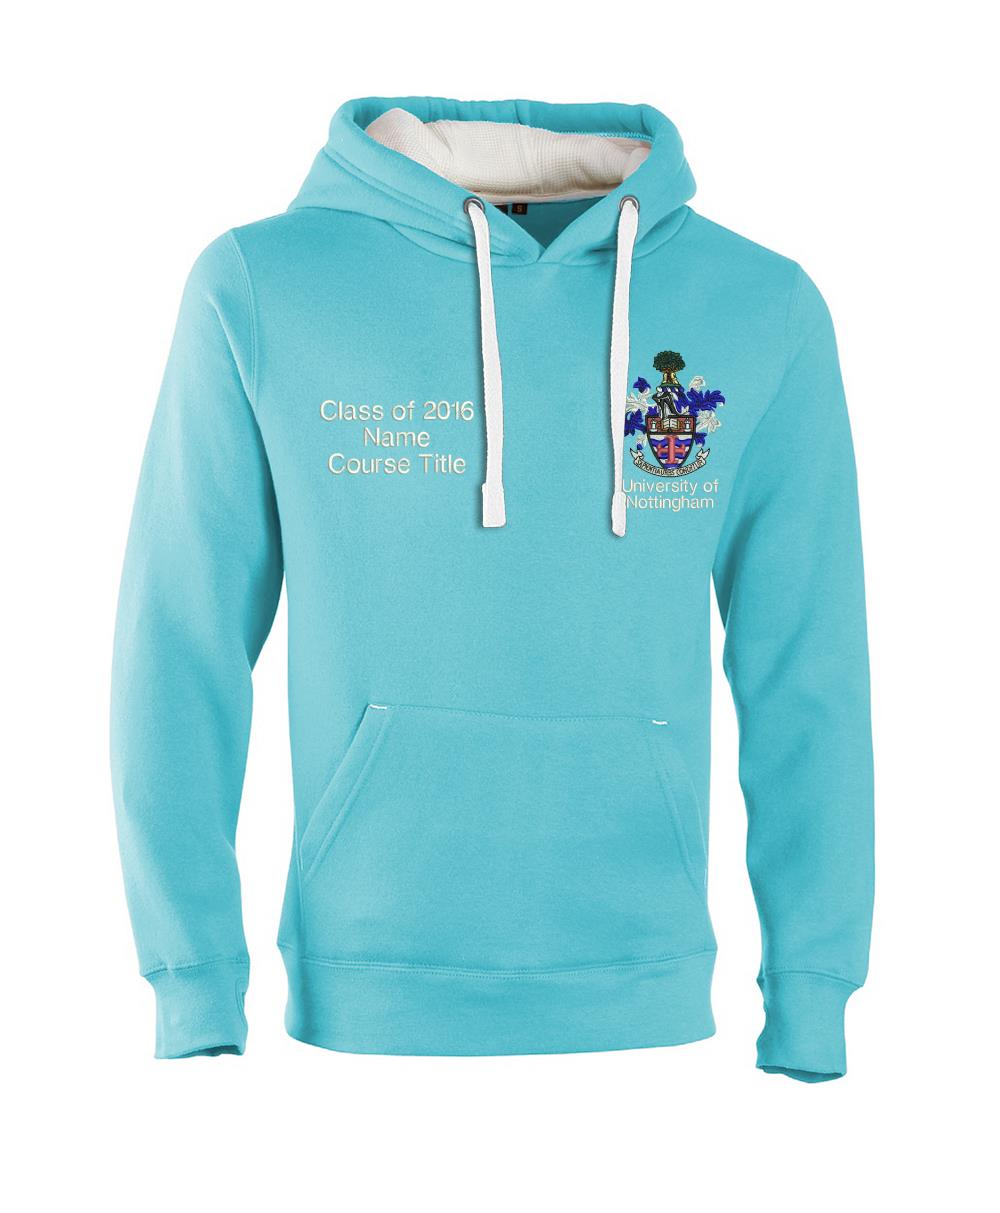 W89PF Ultra-Premium Graduation Hoodie-Nottingham Ultra Soft Feel Hooded Top